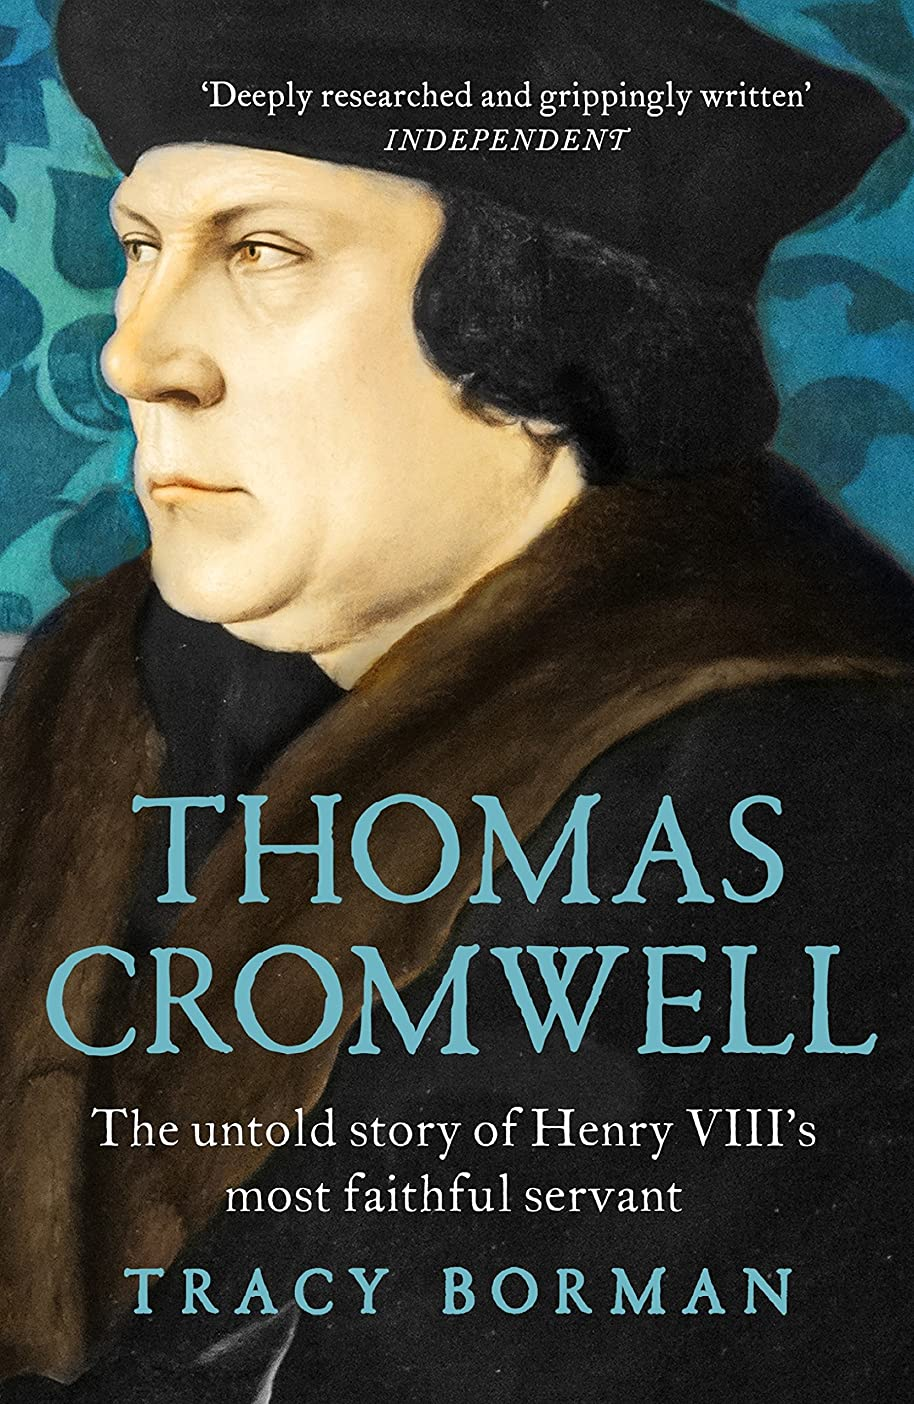 薬死ぬ牛肉Thomas Cromwell: The untold story of Henry VIII's most faithful servant (English Edition)